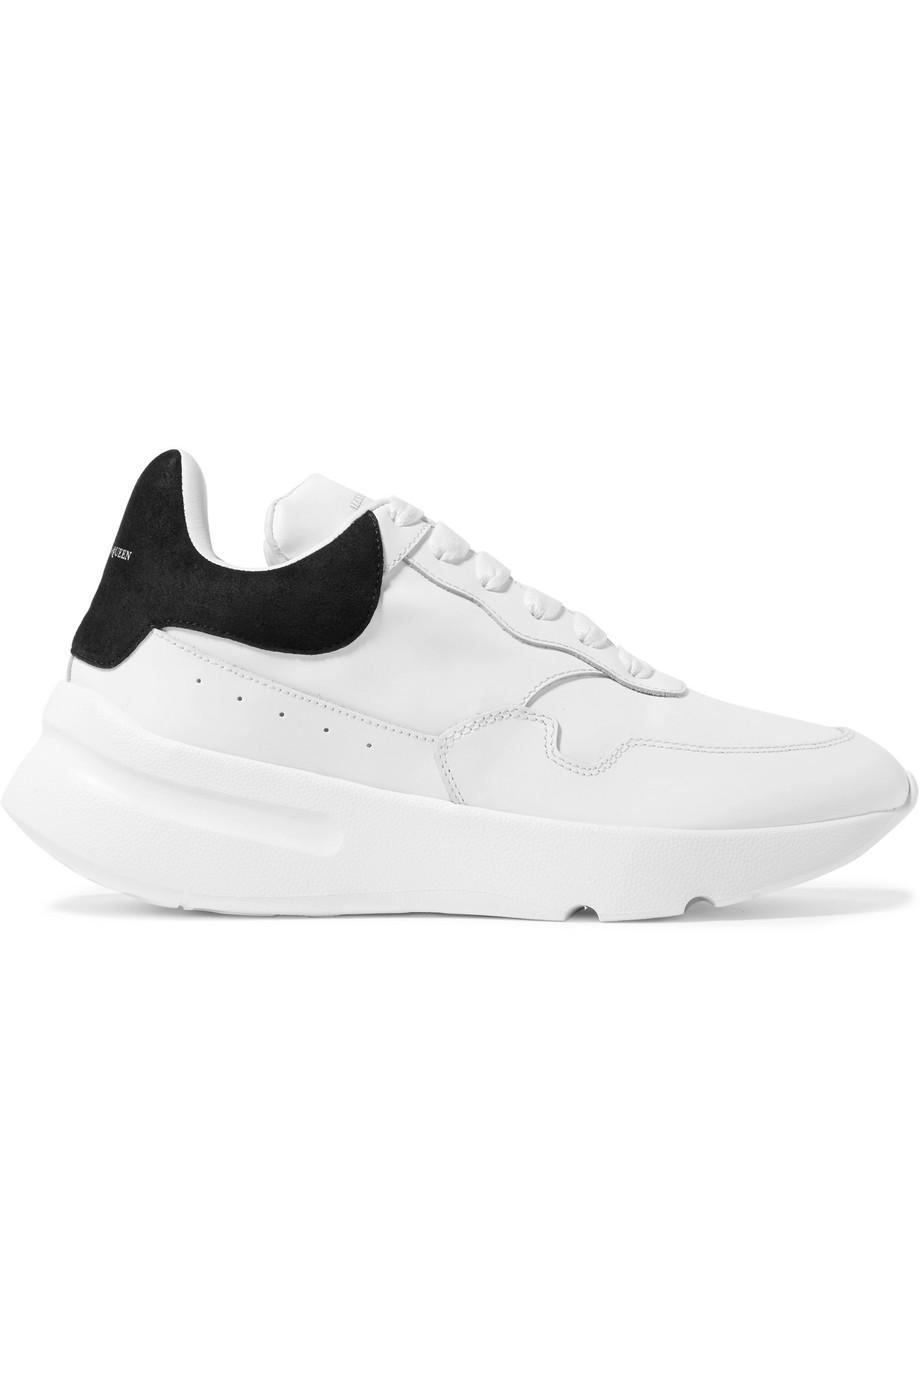 Metallic-trimmed Leather Exaggerated-sole Sneakers - White Alexander McQueen 3Gh17r